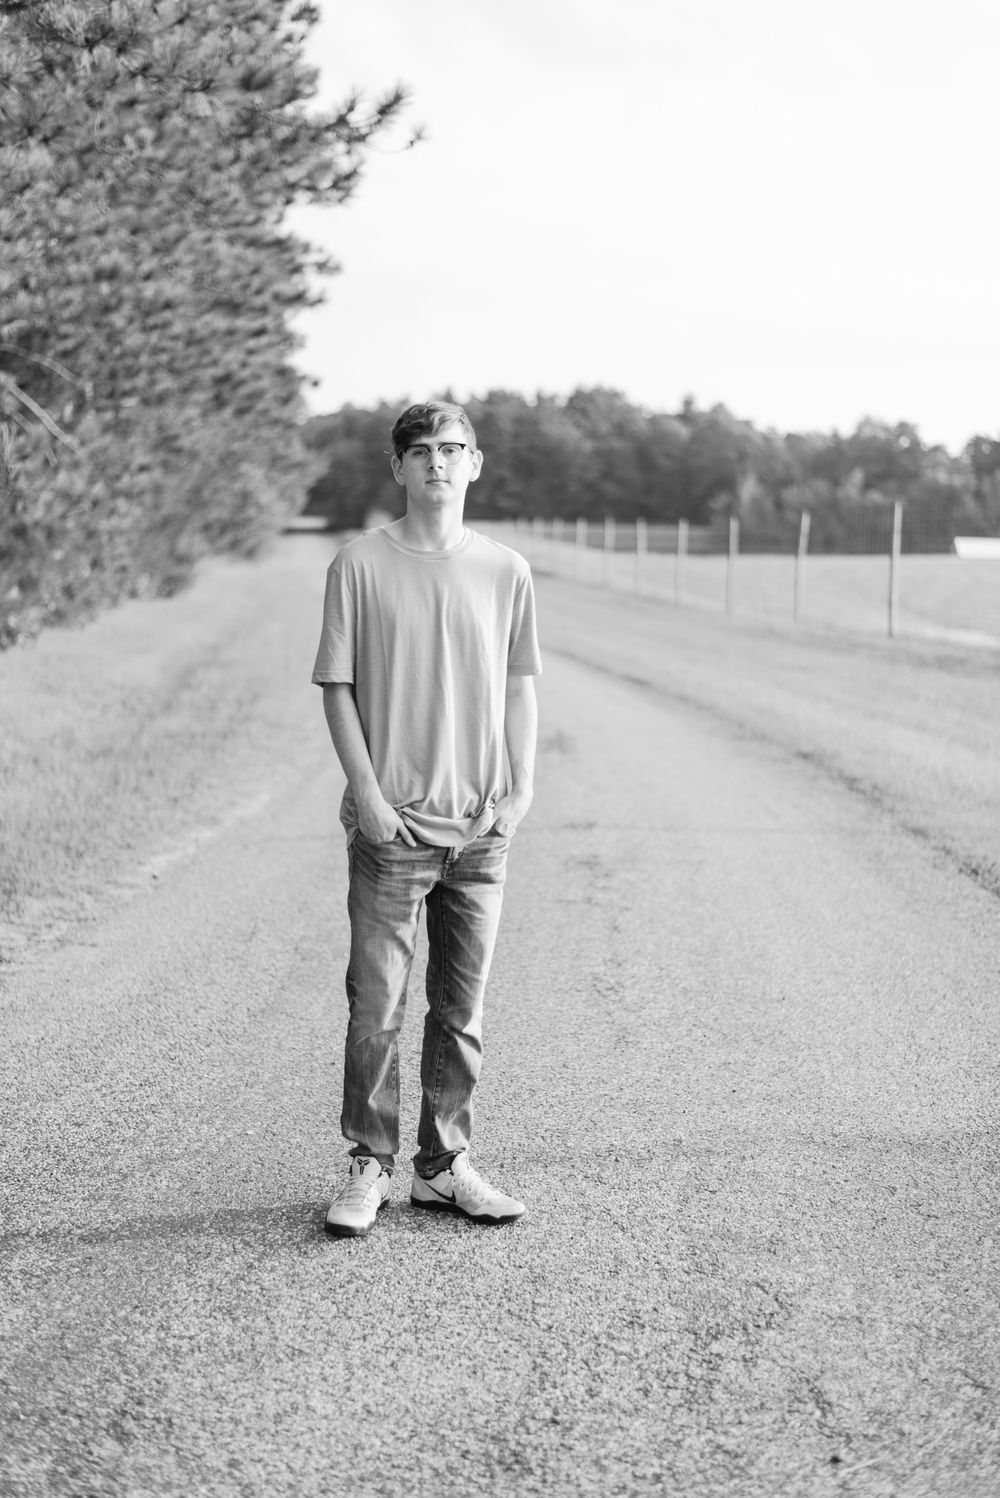 Senior boy standing on road black and white